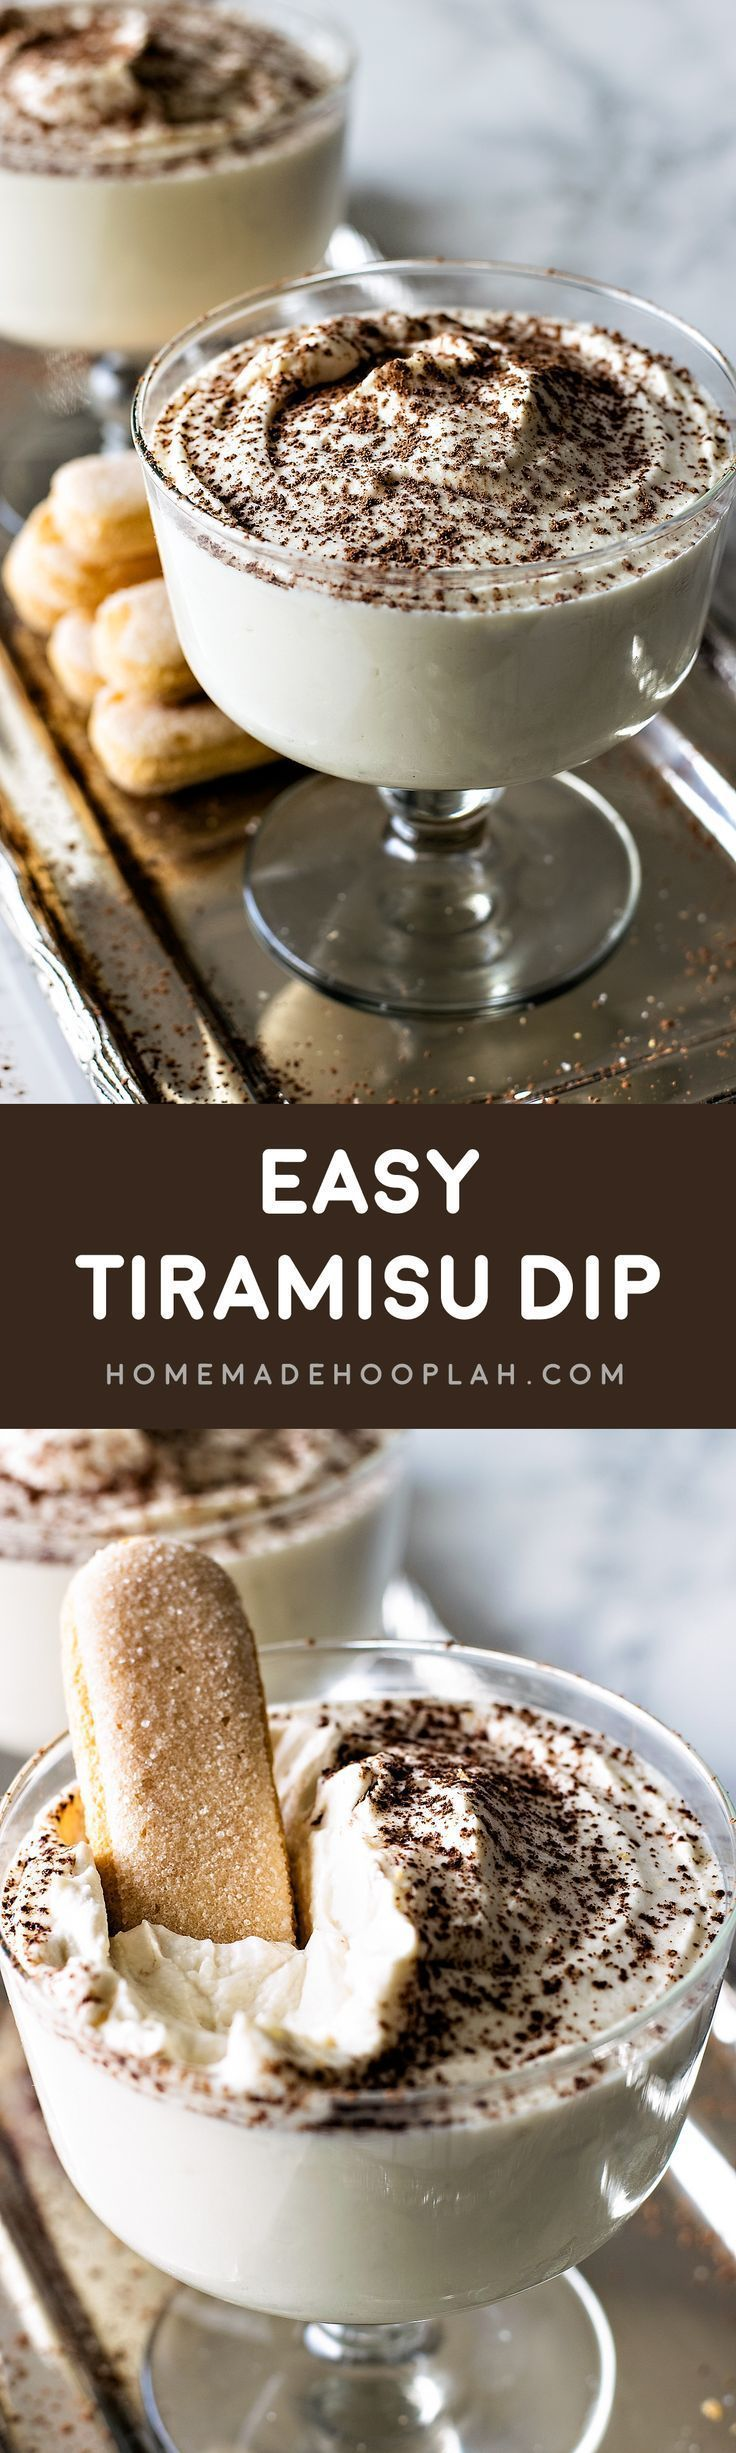 Easy Tiramisu Dip! A decadent dip that tastes just like a tiramisu dessert but made in a fraction of the time. All the taste without all the trouble! | http://HomemadeHooplah.com